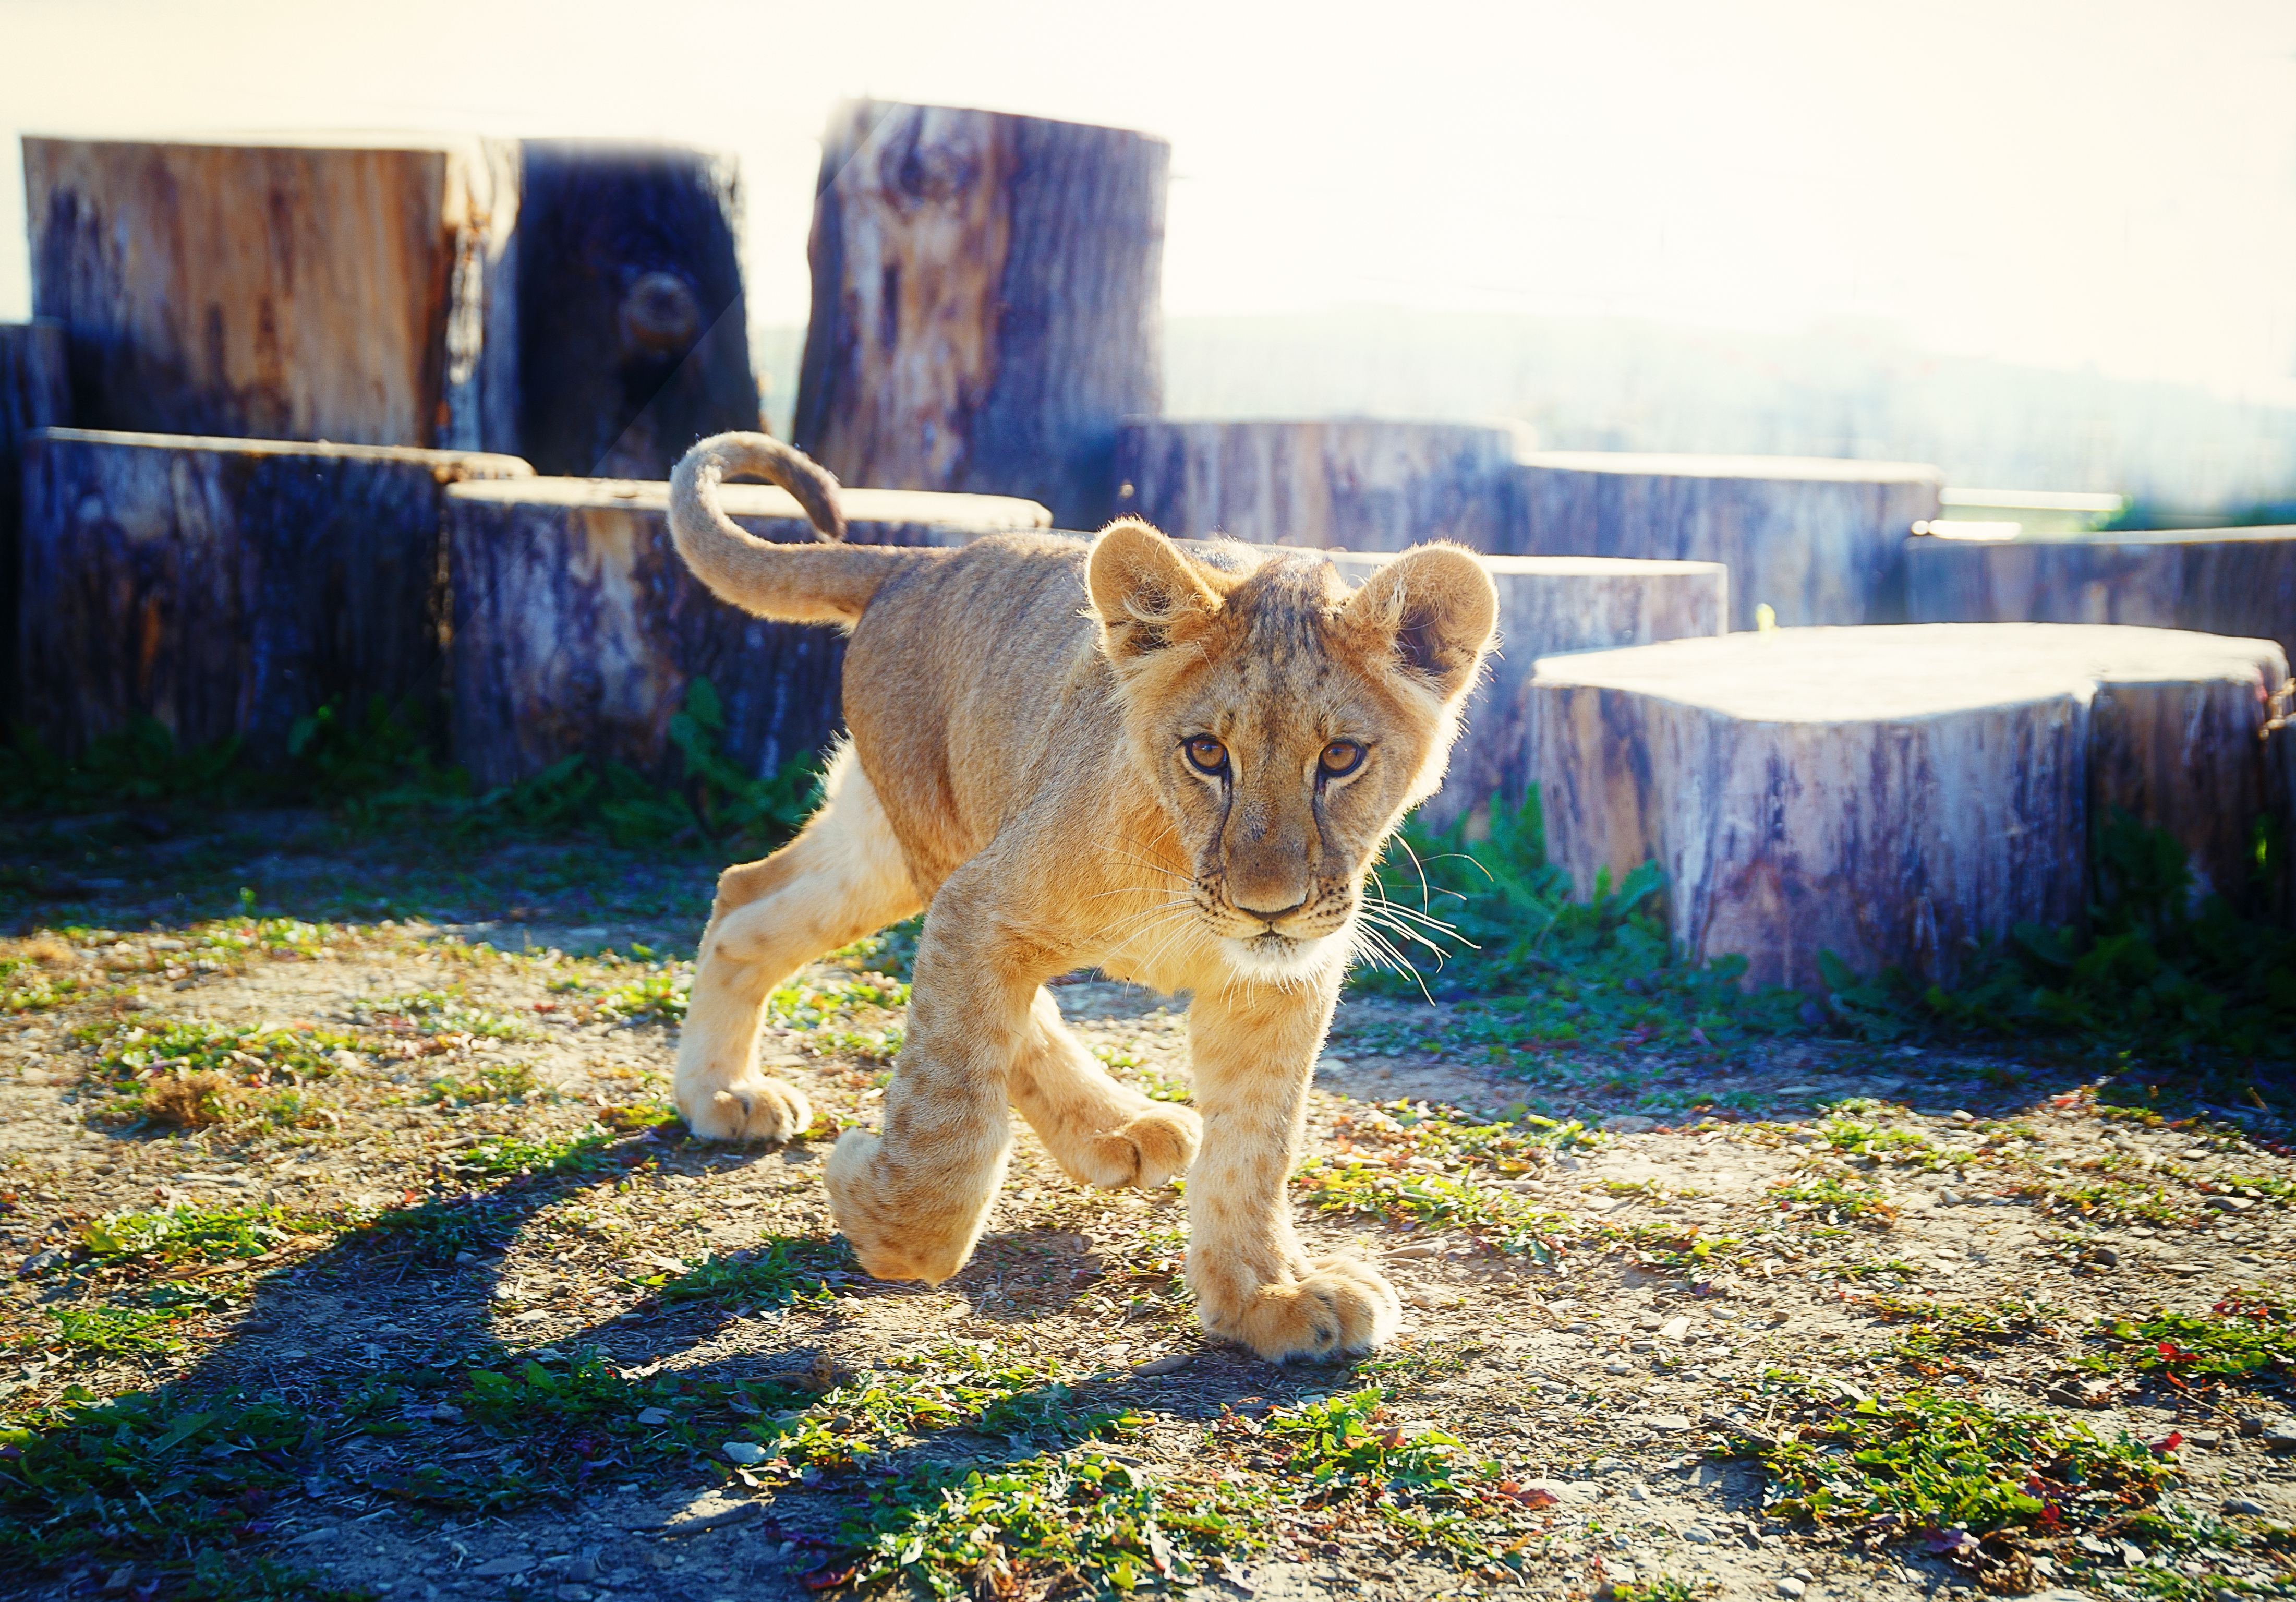 Little lion cub in nature and wooden log